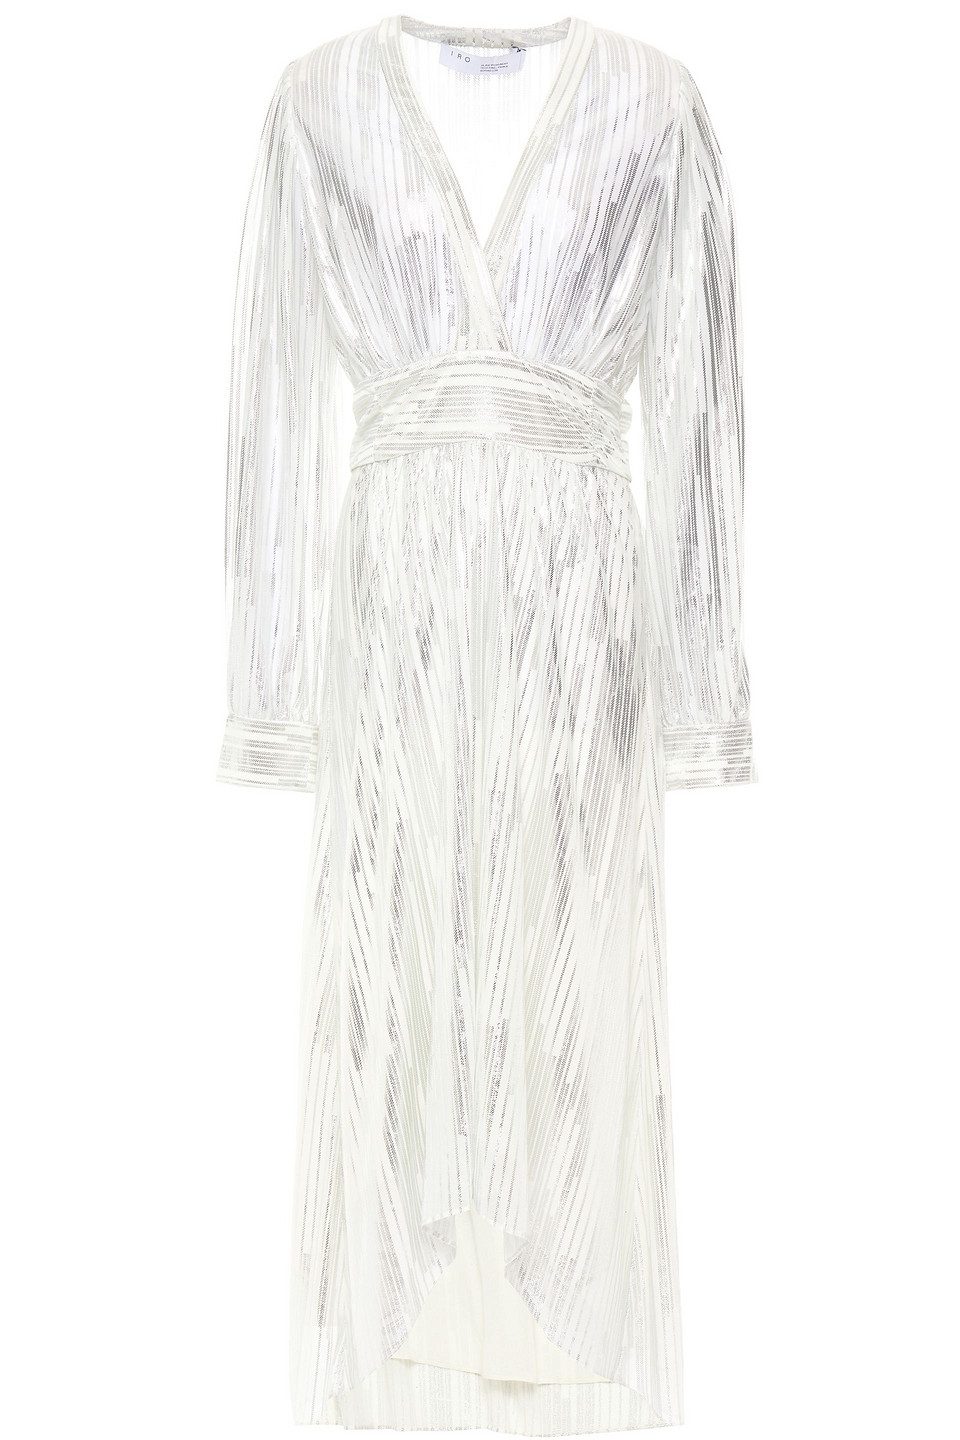 IRO | Iro Woman Eureka Metallic Printed Jersey Midi Dress White | Clouty